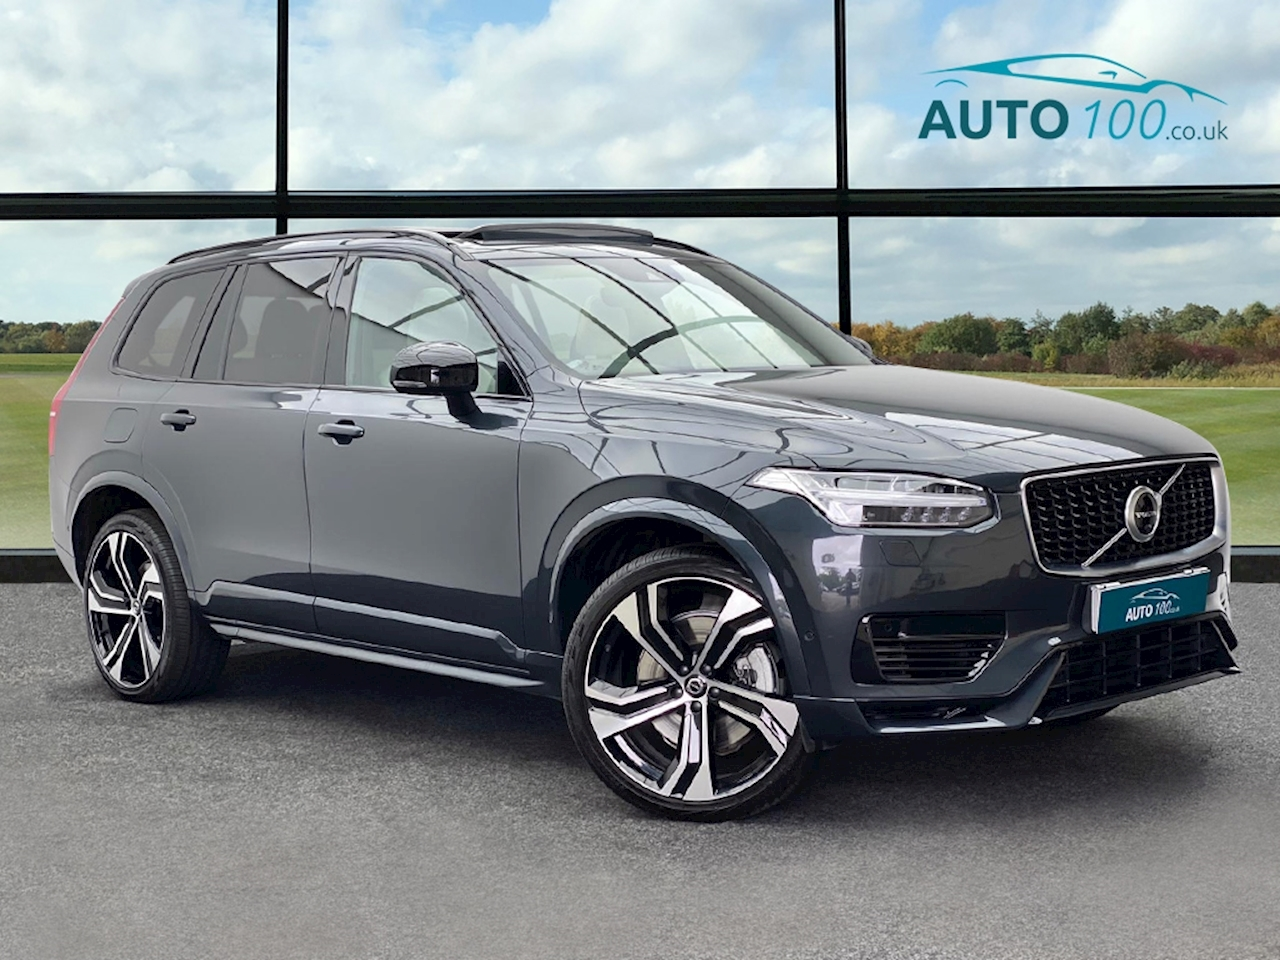 Volvo Xc90 T8 Twin Engine R-Design Pro Awd Estate 2.0 Automatic Petrol/Electric